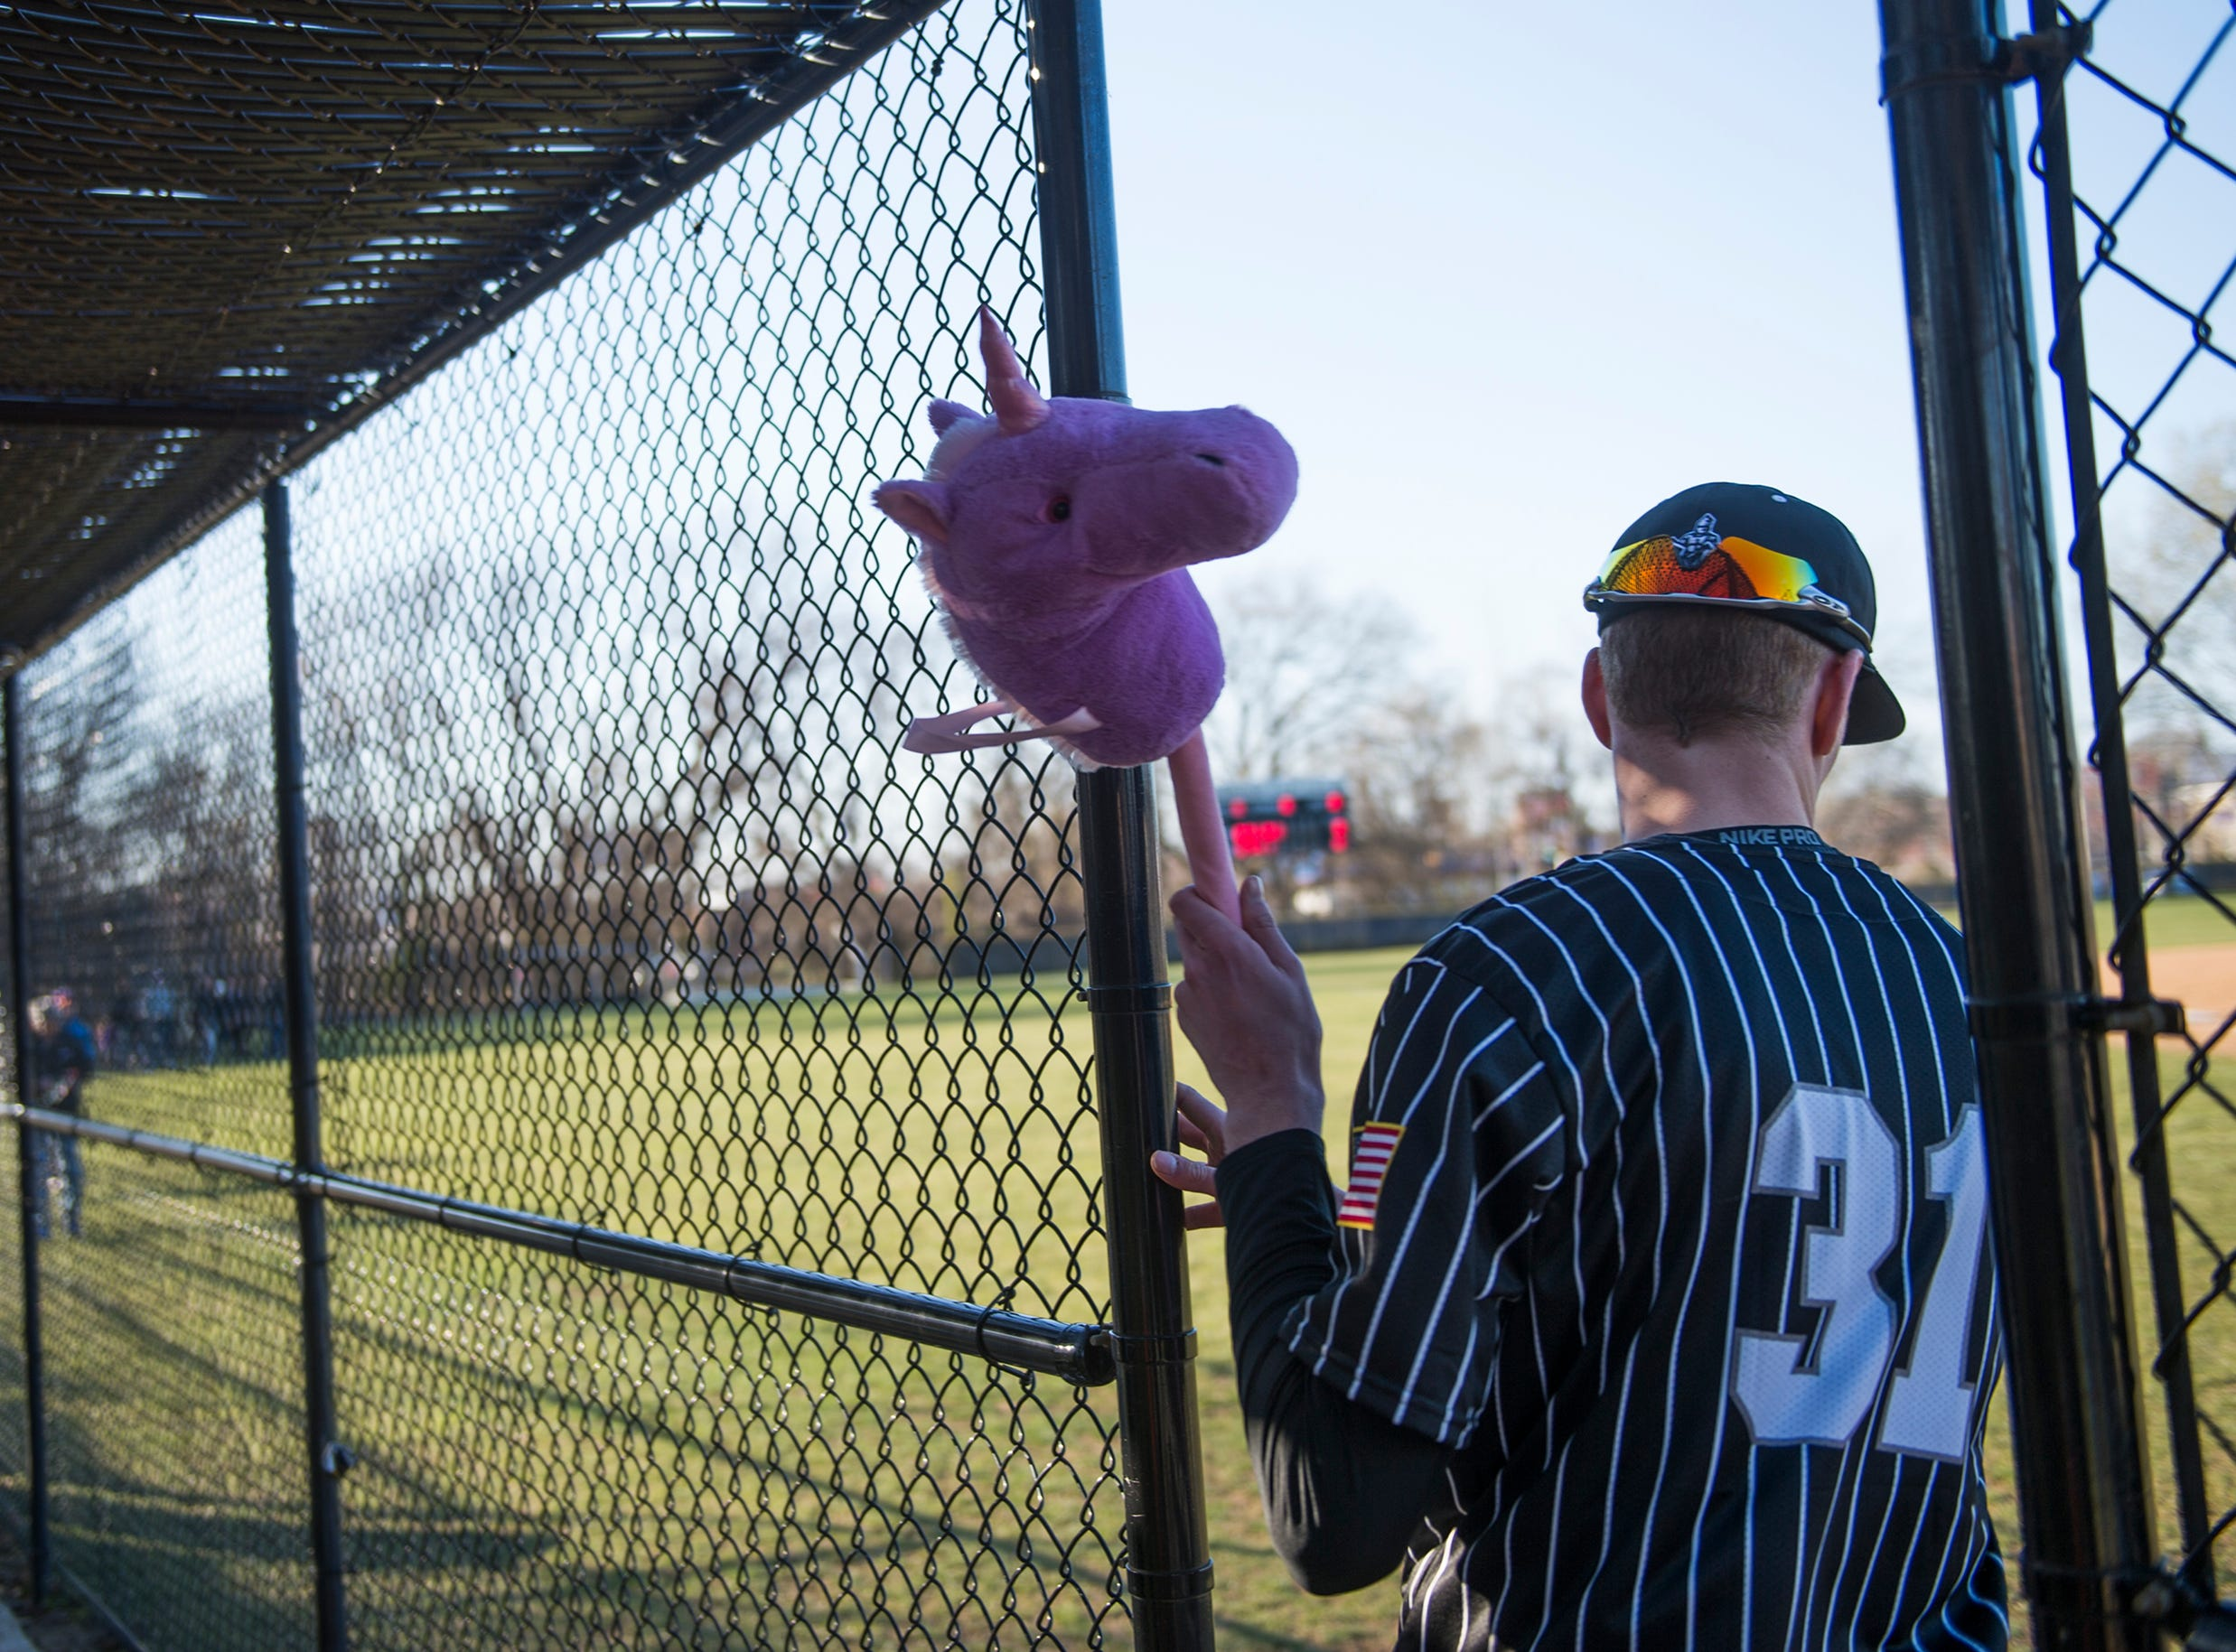 Bishop Eustace's Matt Bravyak (31) grabs the team's unicorn following an Opening Day win against Eastern Monday, April 1, 2019 in Pennsauken. Eustace won 12-0.